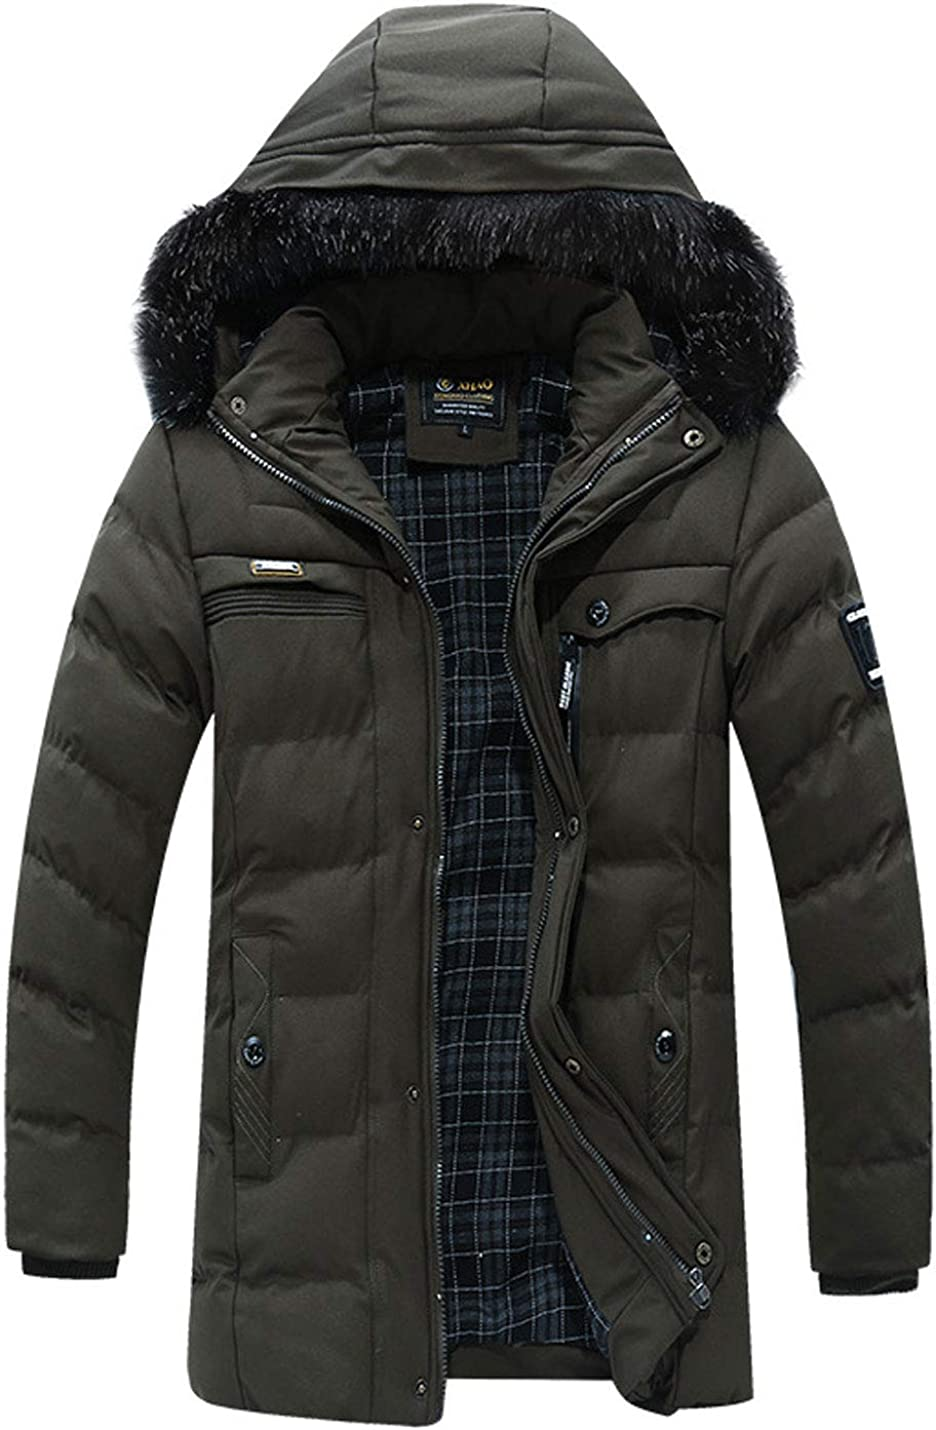 Flygo Men's Winter Casual Cotton Padded Full-Zip Button Thicken Quilted Fur Hooded Mid-Long Jackets Outerwear